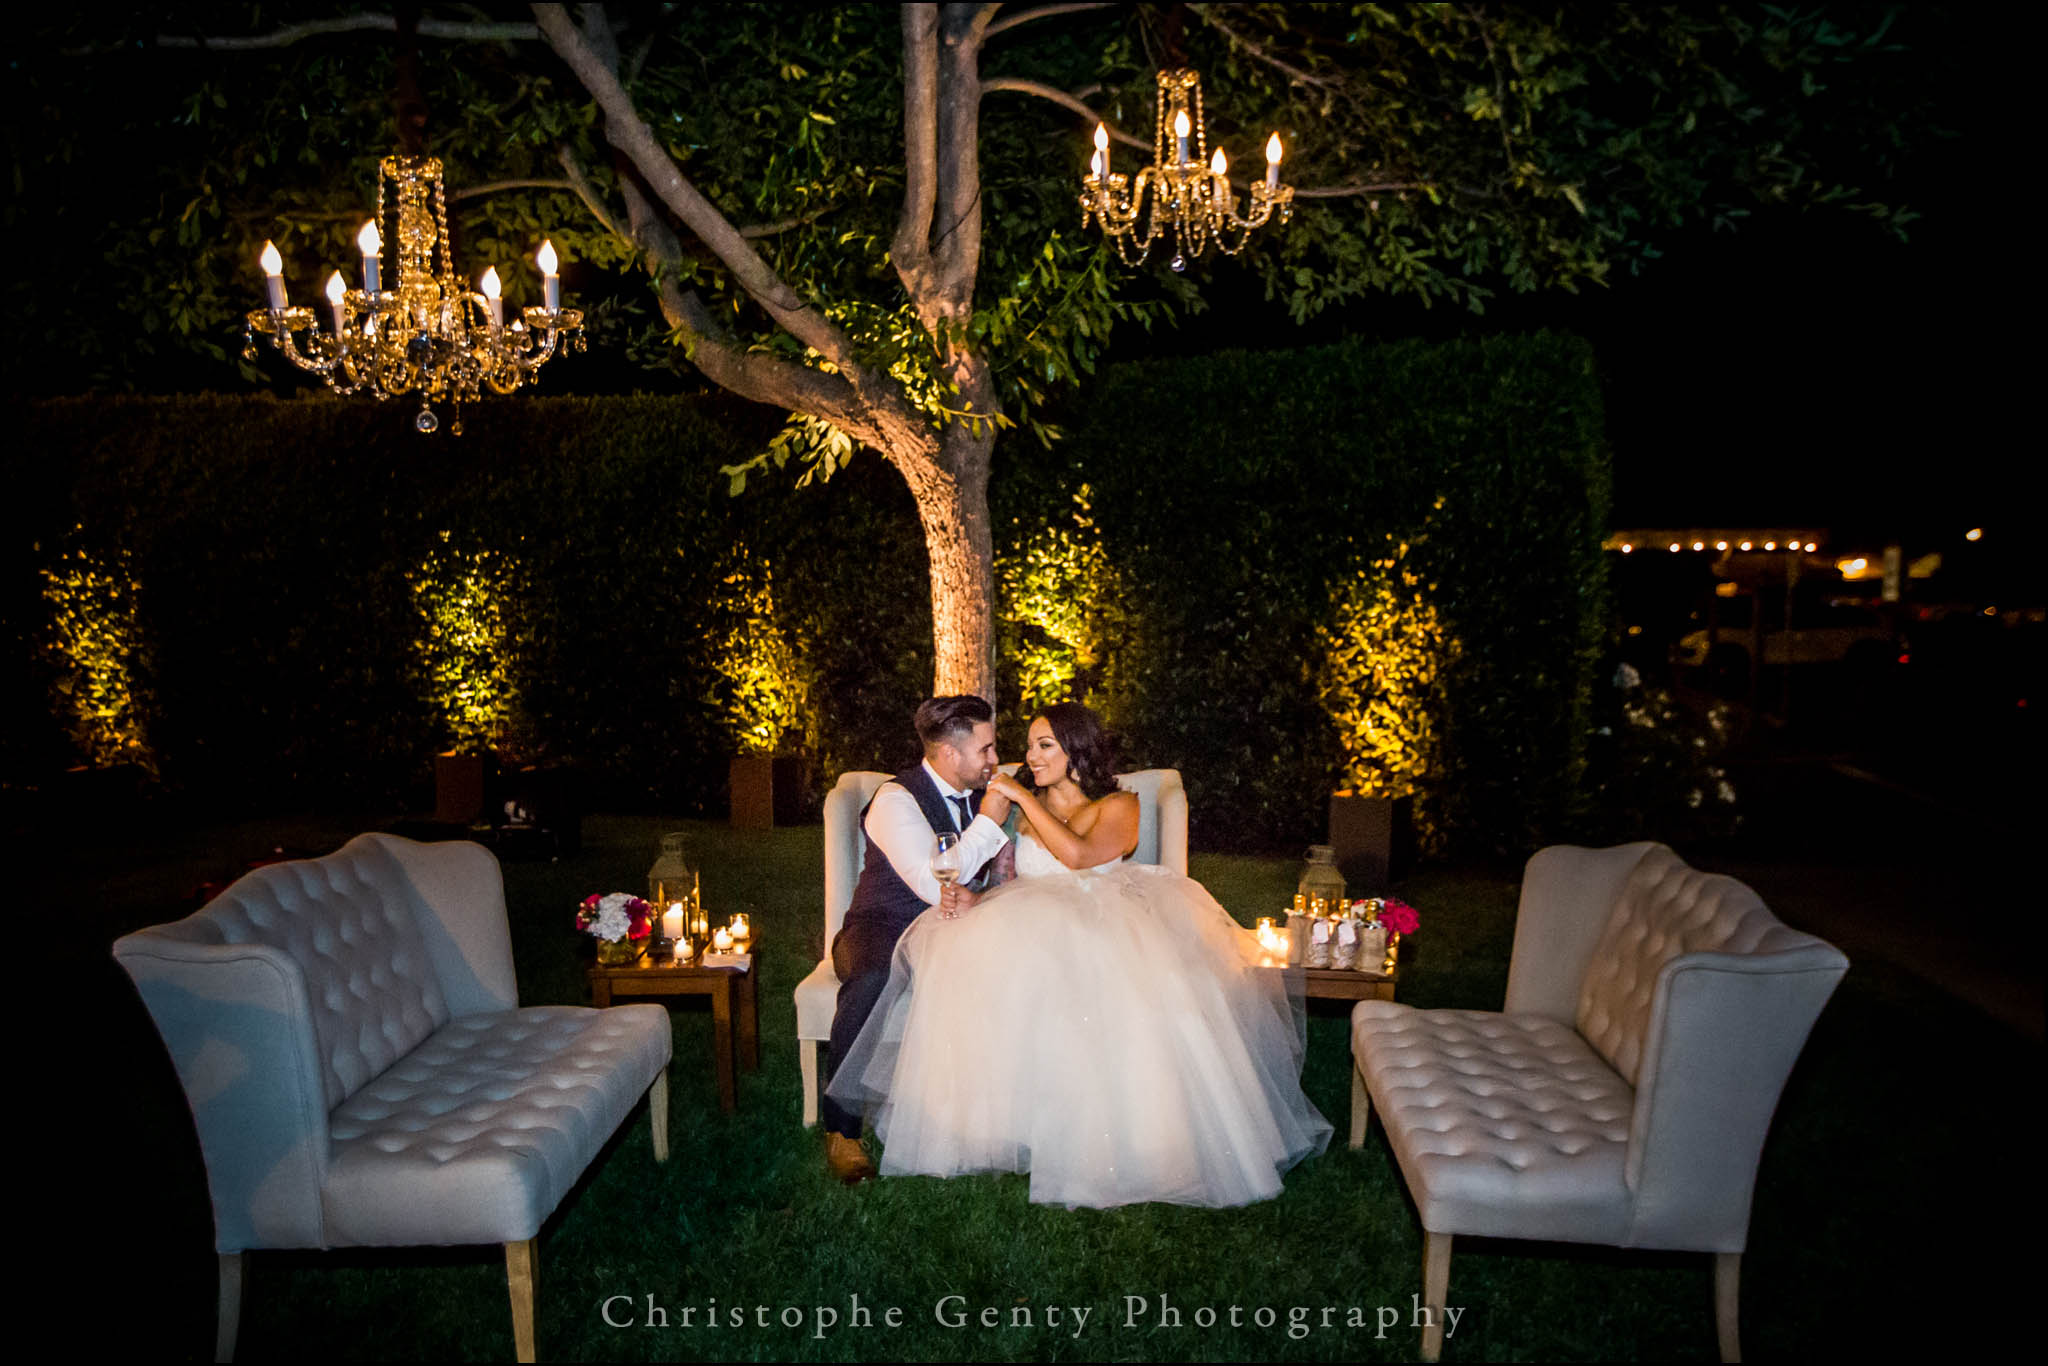 Wedding Photography at The Vintage Estate at The Villagio Inn and Spa in Yountville, CA